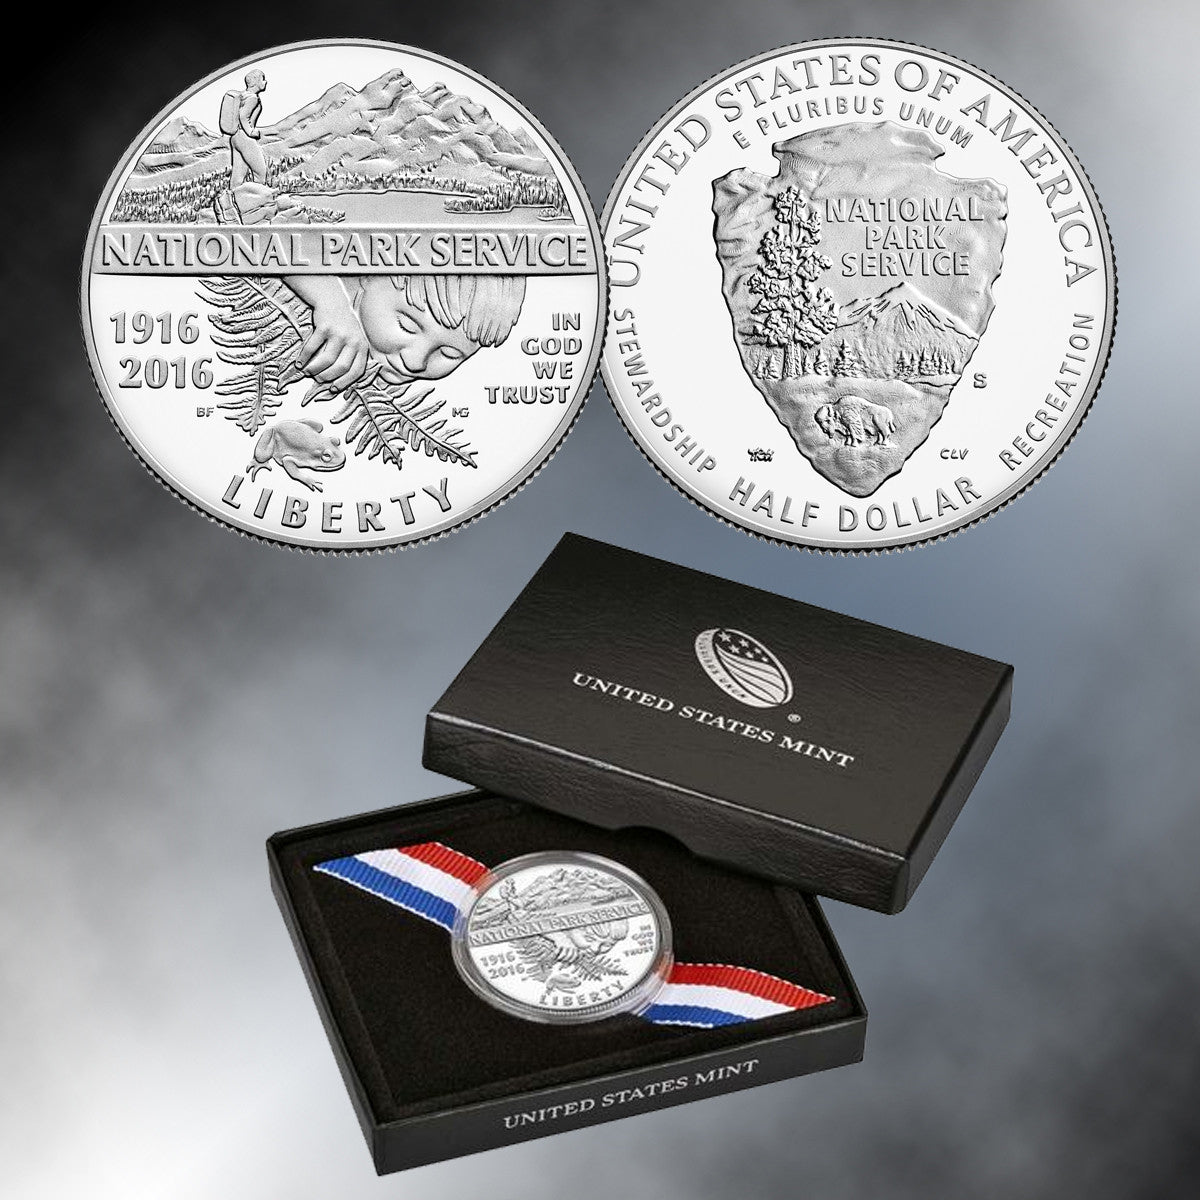 100th Anniversary of the National Park Service 2016 Proof Clad Half Dollar